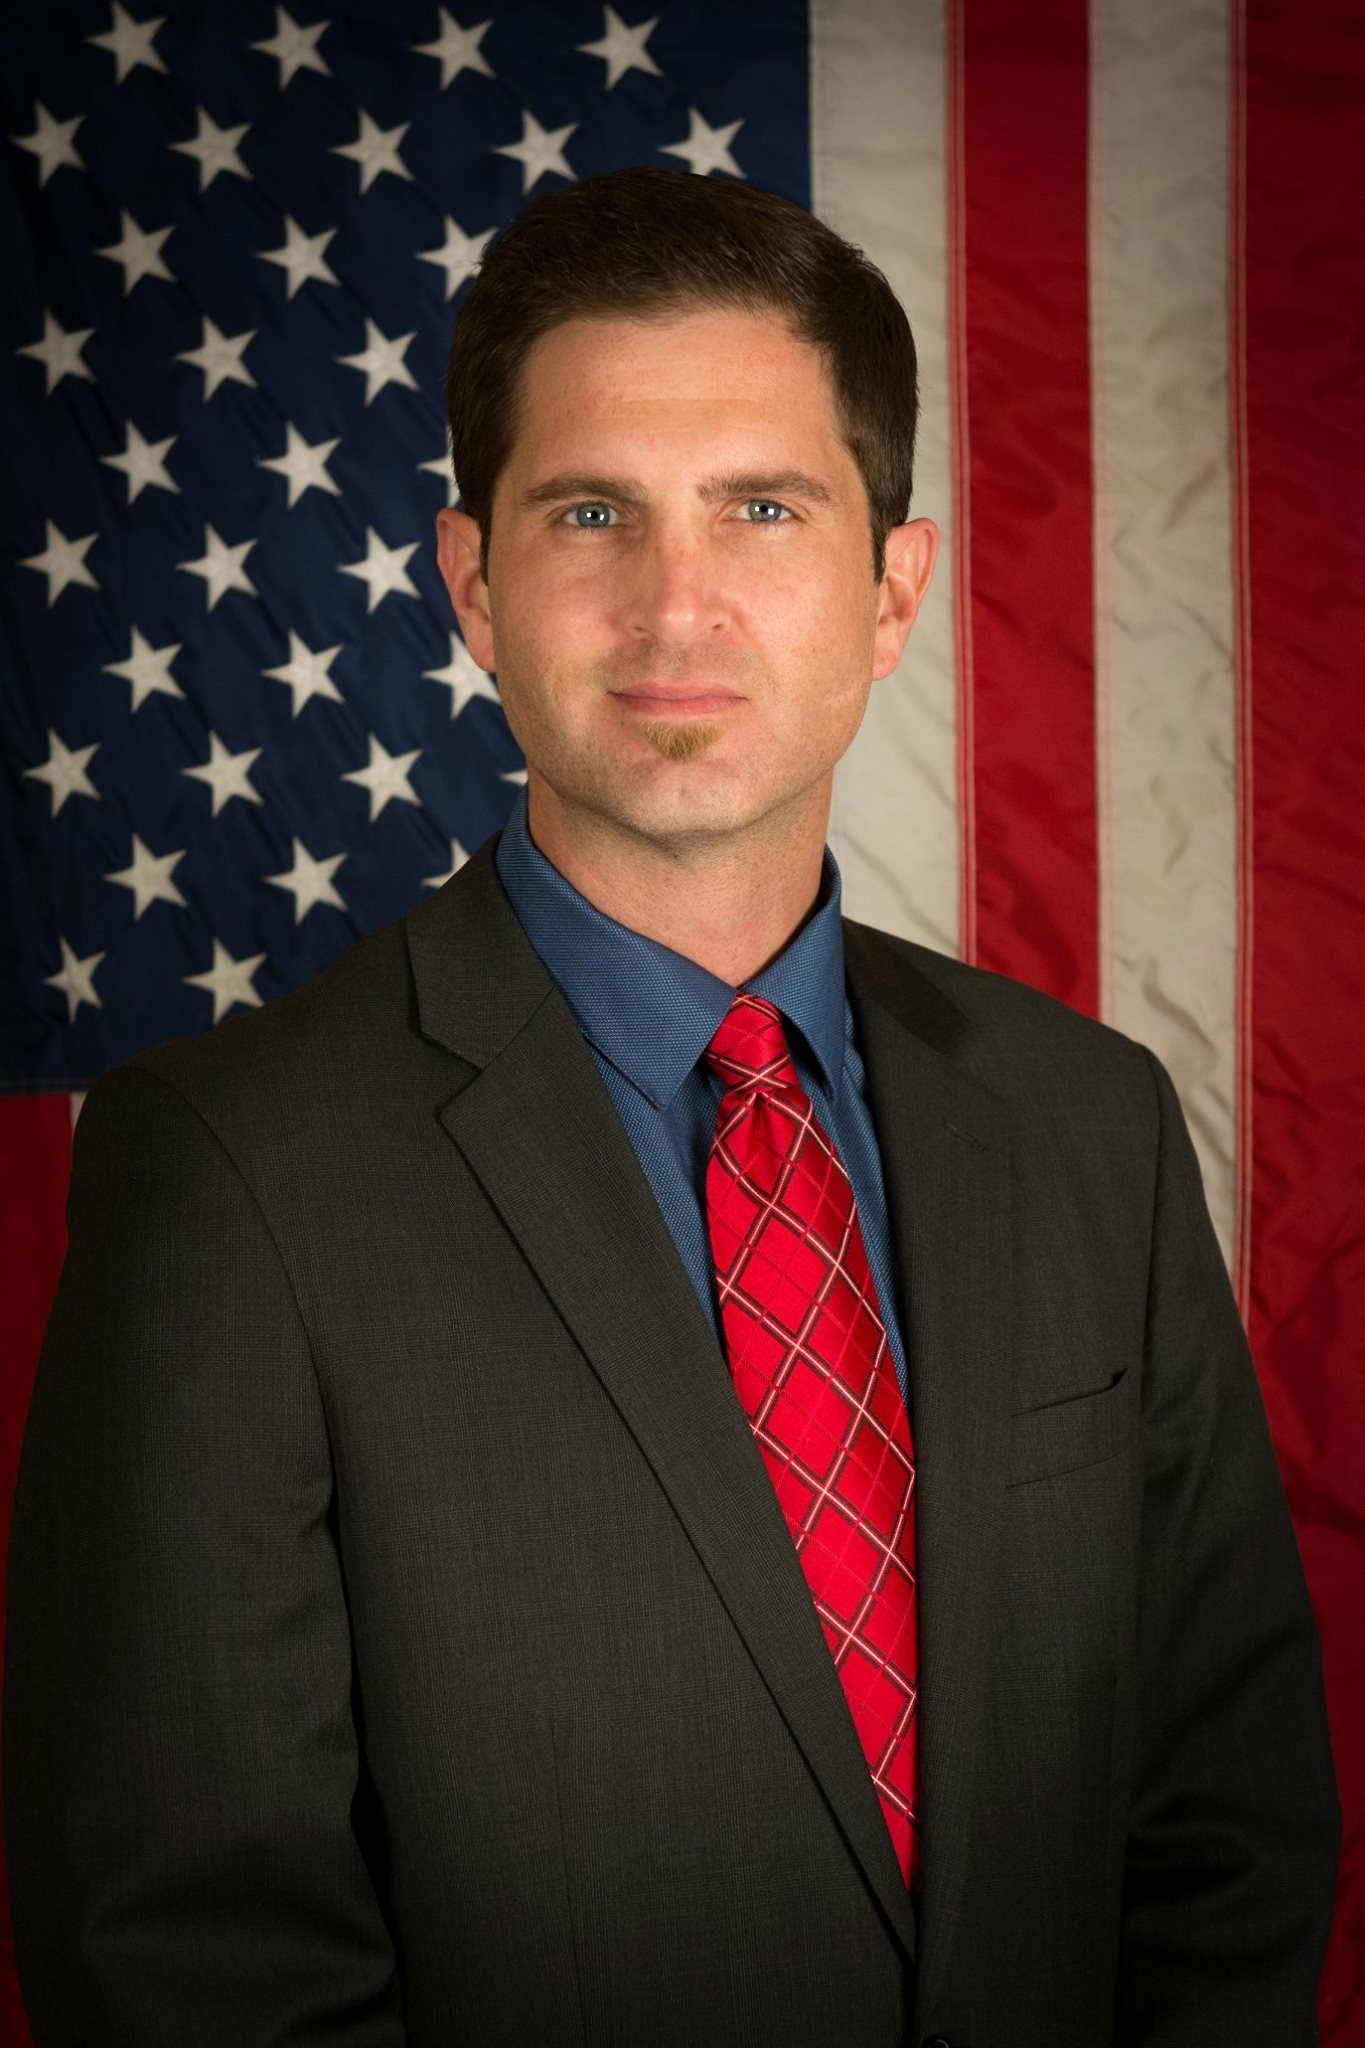 Tyson Manker, national director of Veterans For Bernie